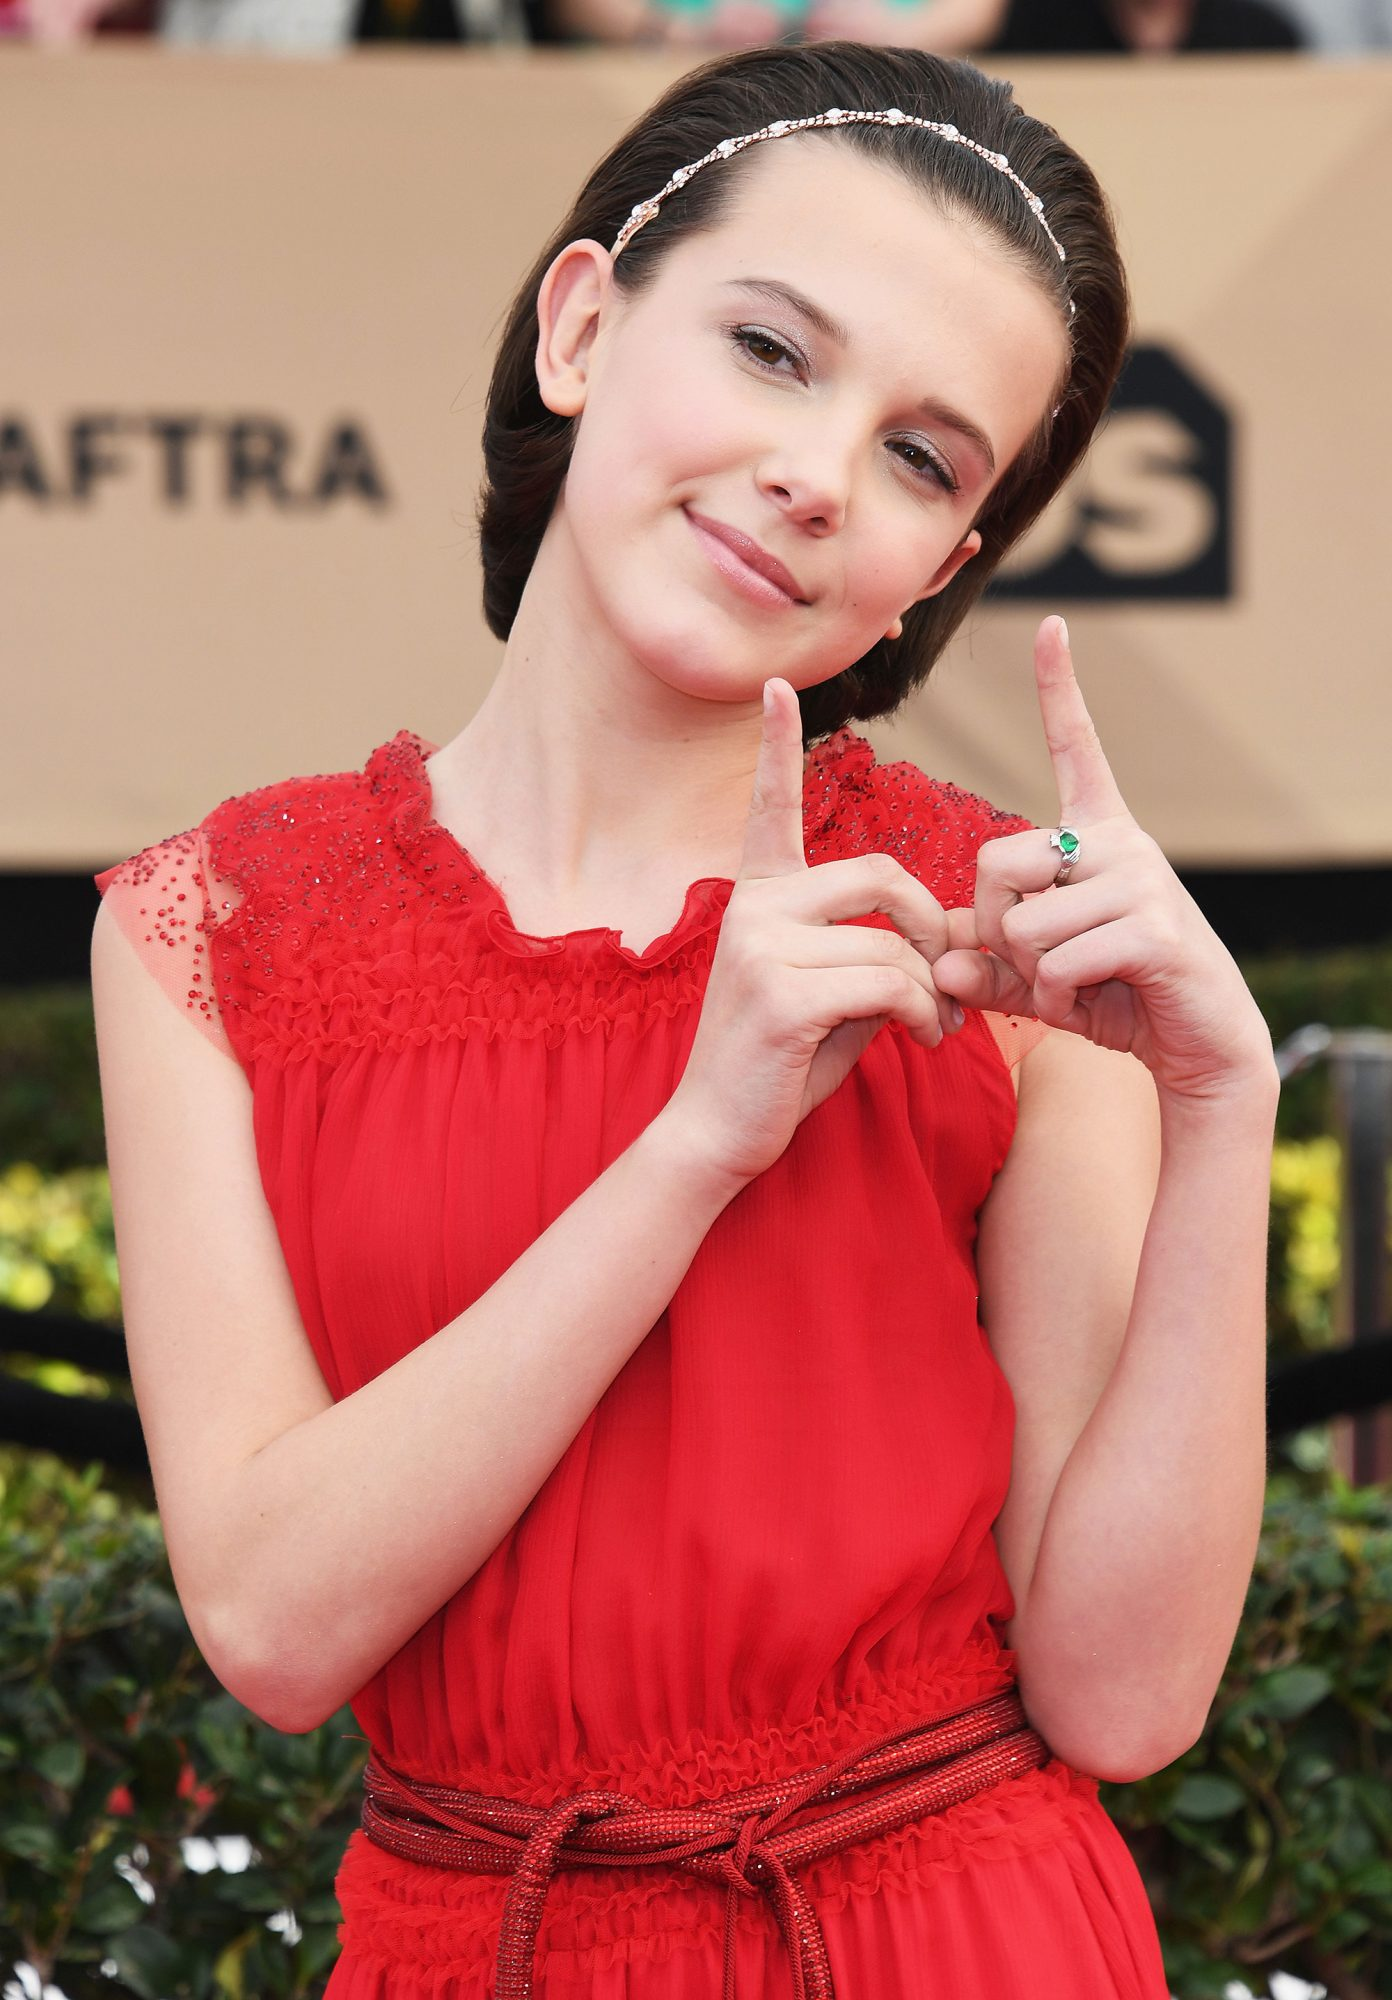 LOS ANGELES, CA - JANUARY 29: Actor Millie Bobby Brown attends the 23rd Annual Screen Actors Guild Awards at The Shrine Expo Hall on January 29, 2017 in Los Angeles, California. (Photo by Alberto E. Rodriguez/Getty Images)